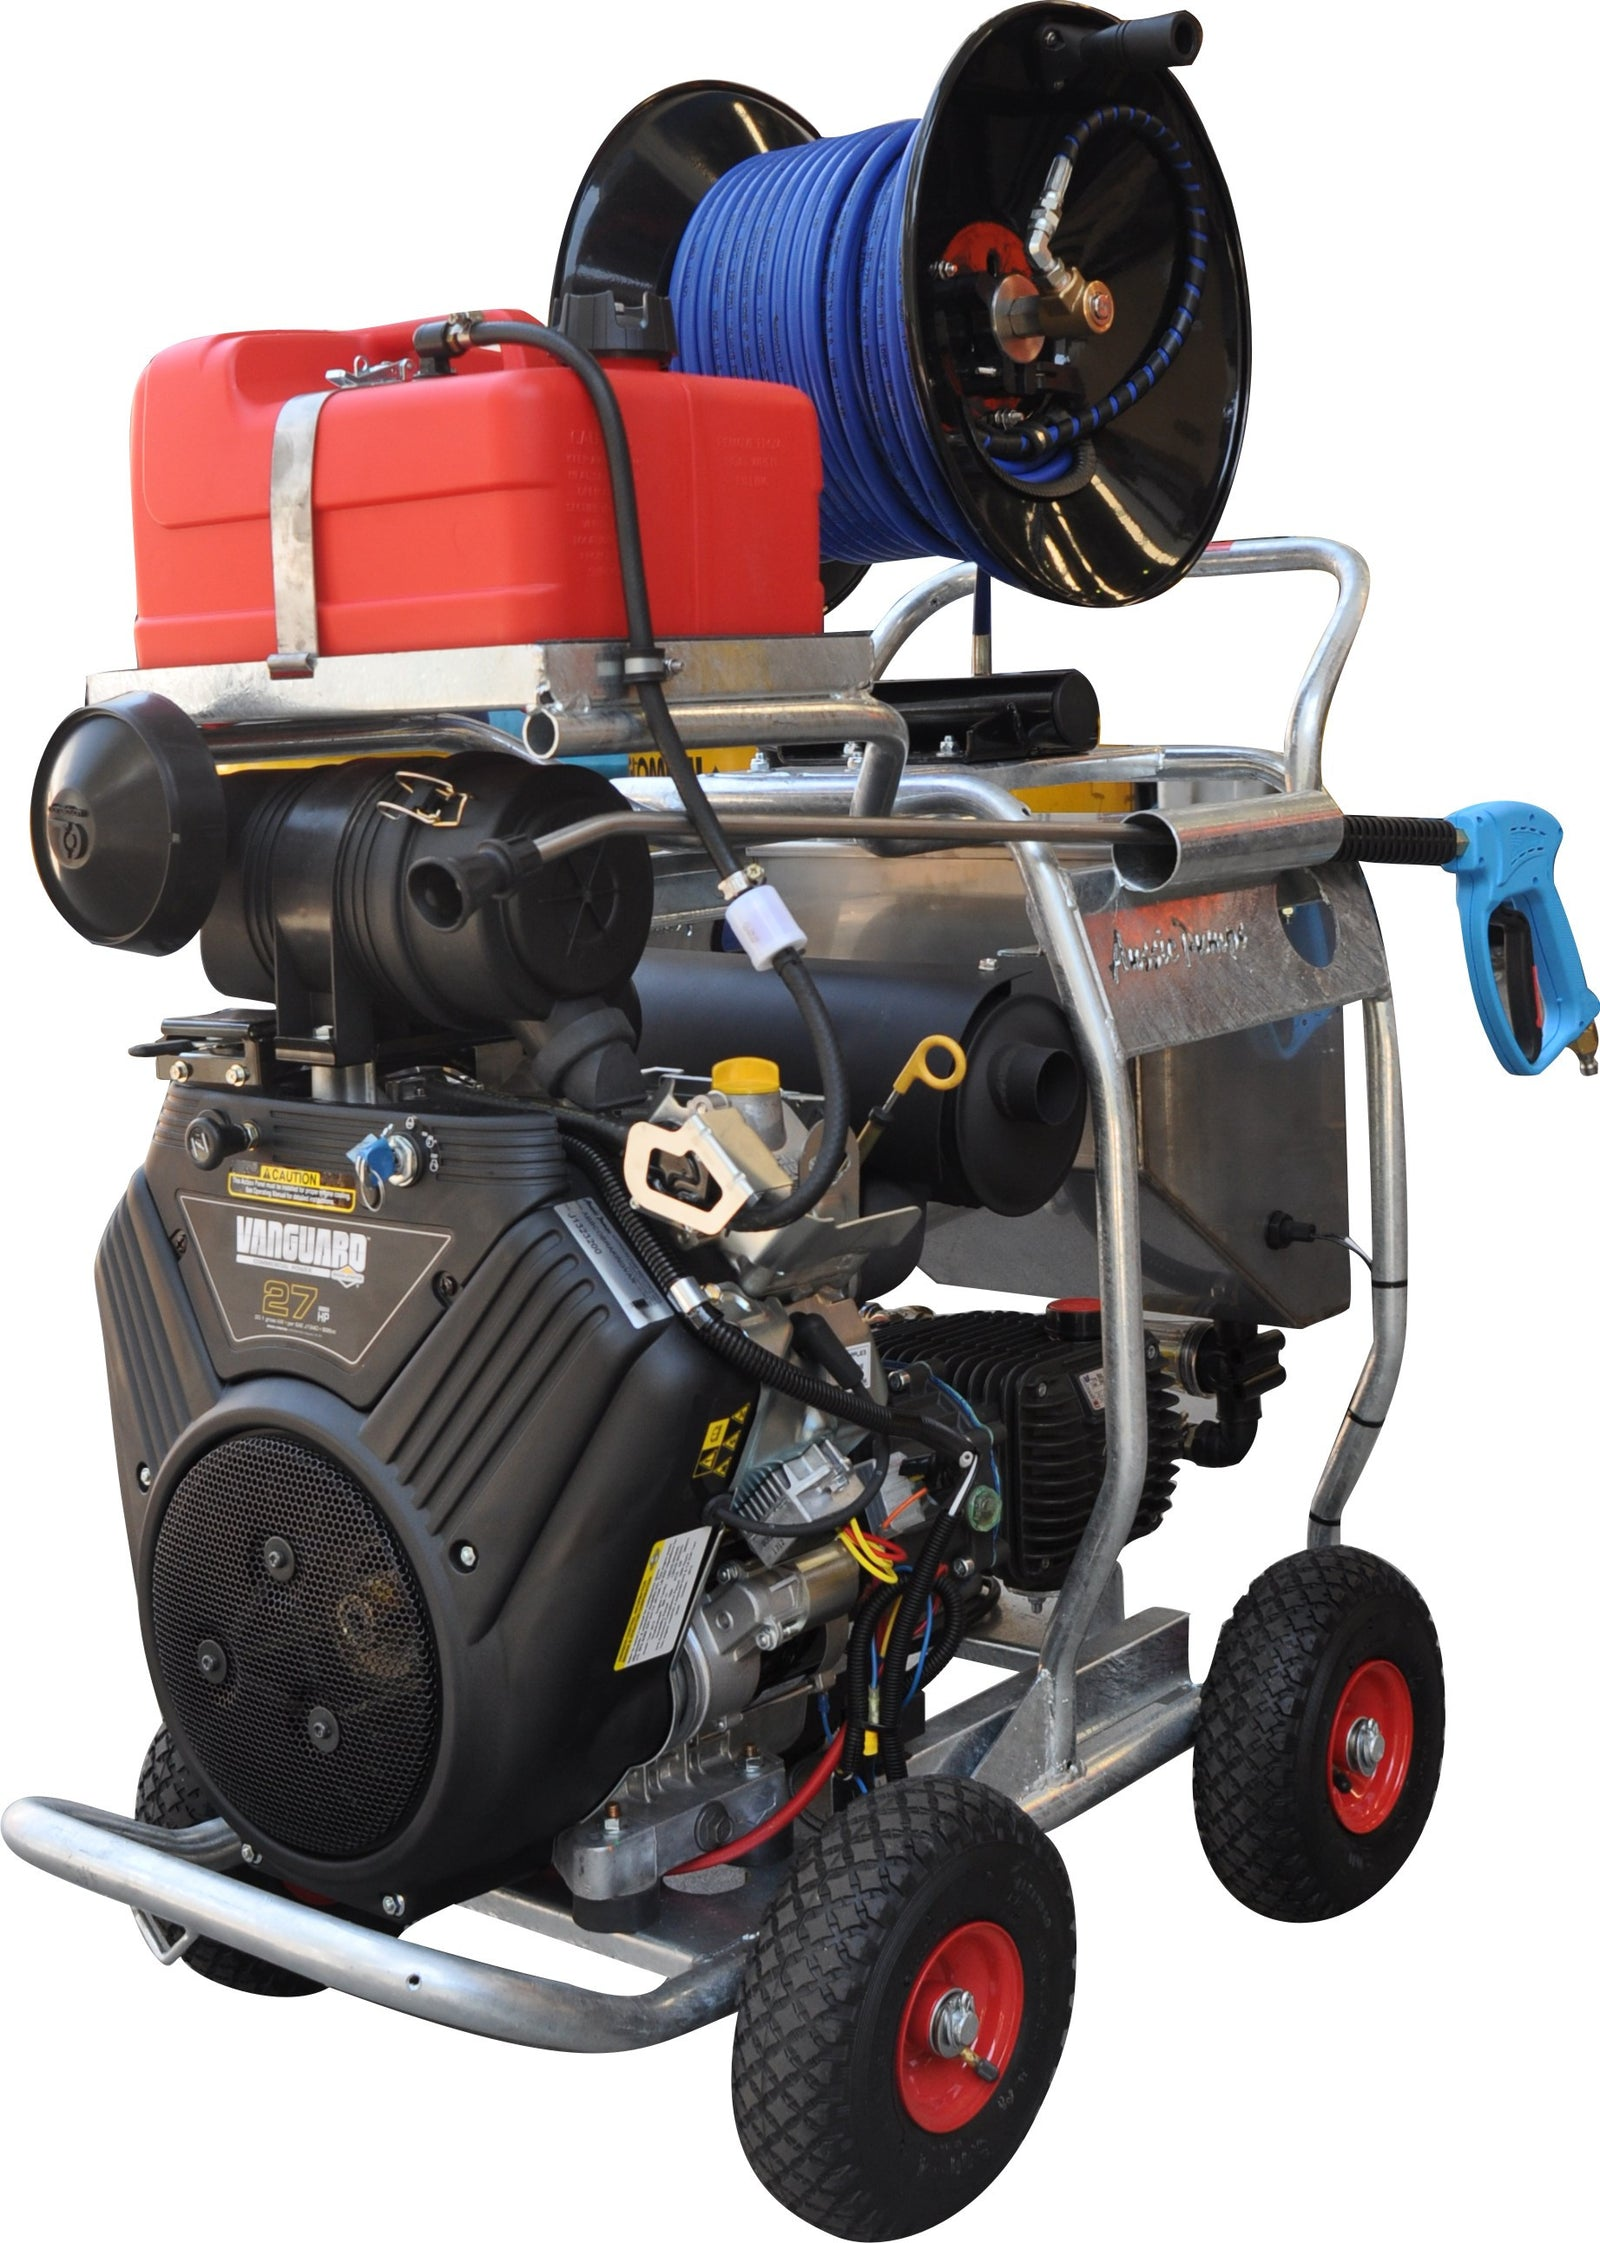 5,000 PSI King Cobra Vanguard Drain Cleaner